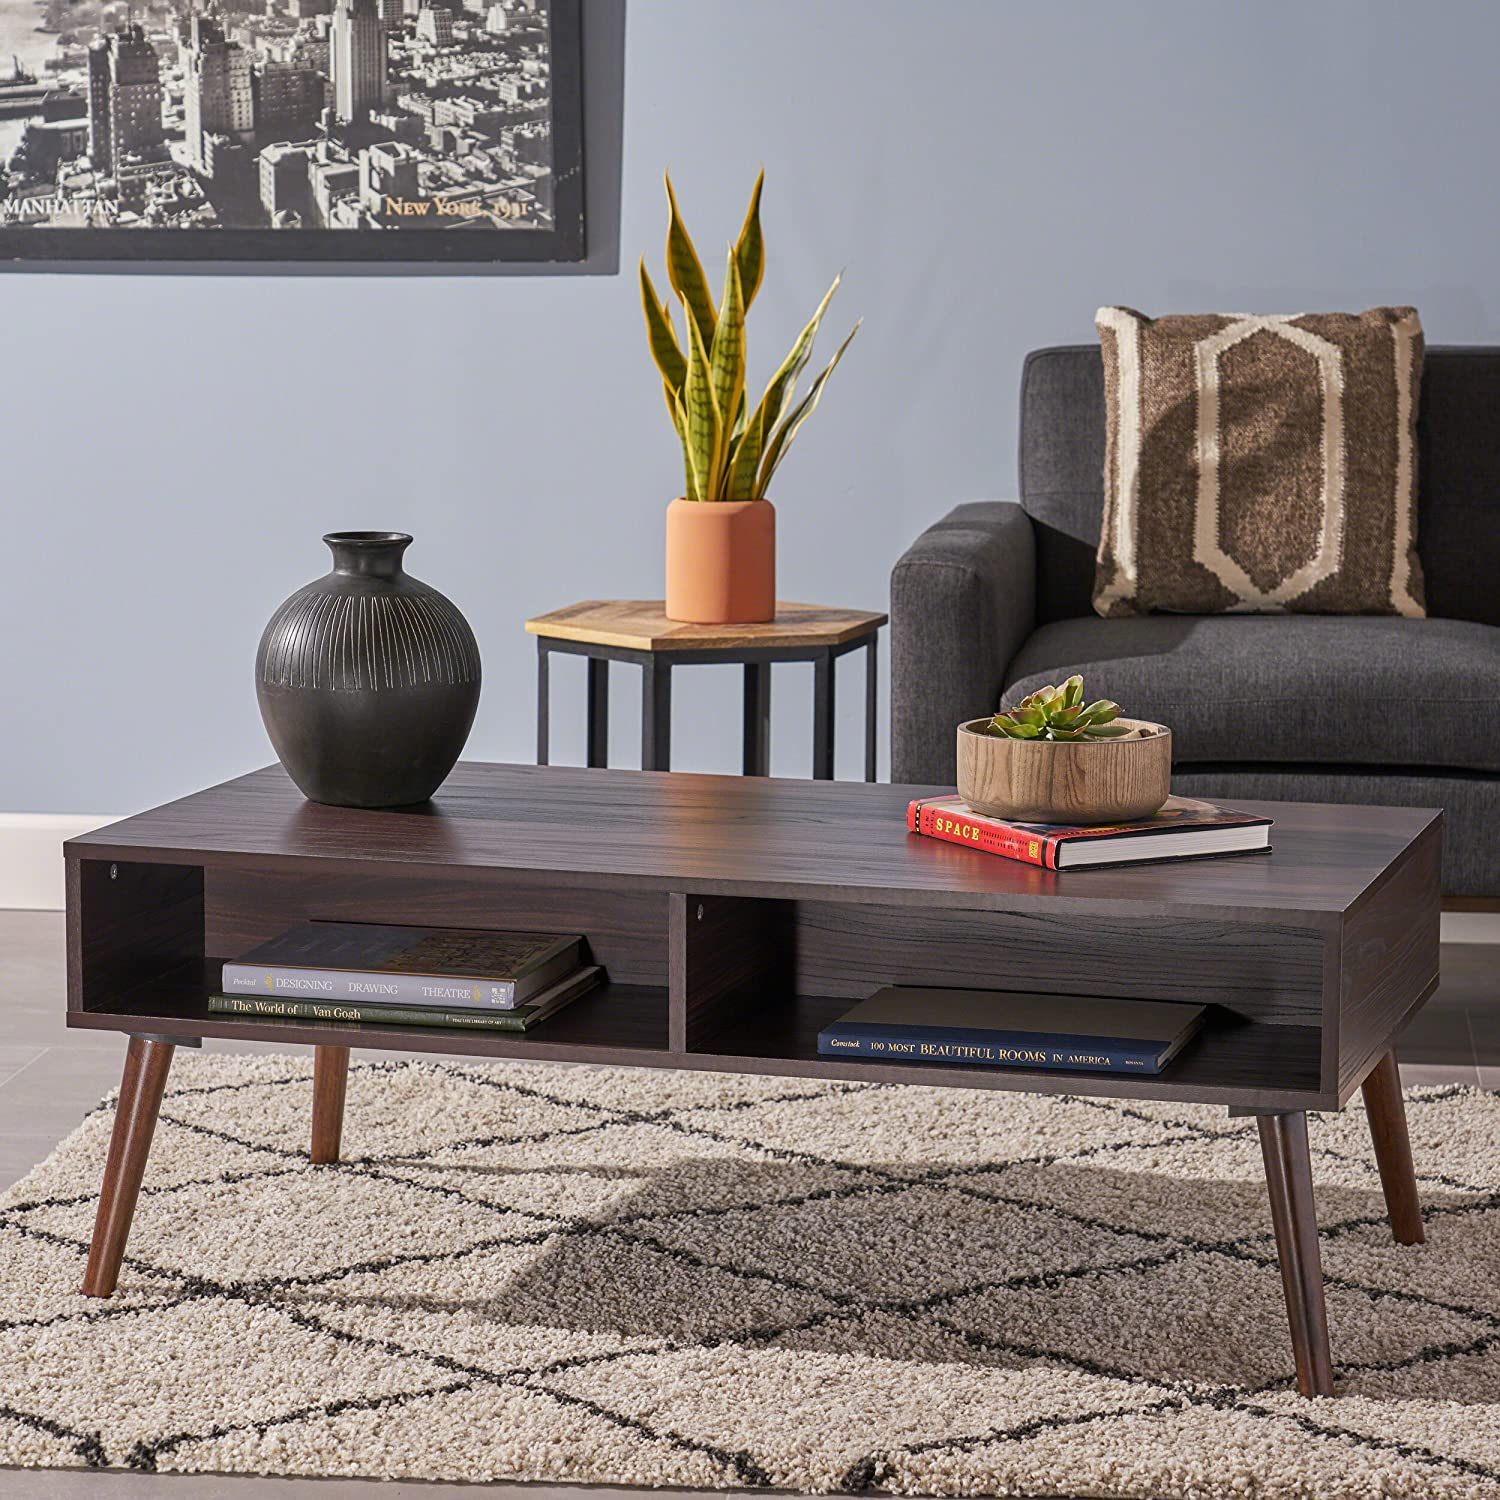 Christopher Knight Home Andy Mid Century Modern Fuax Wood Overlay Coffee Table, Dark Walnut